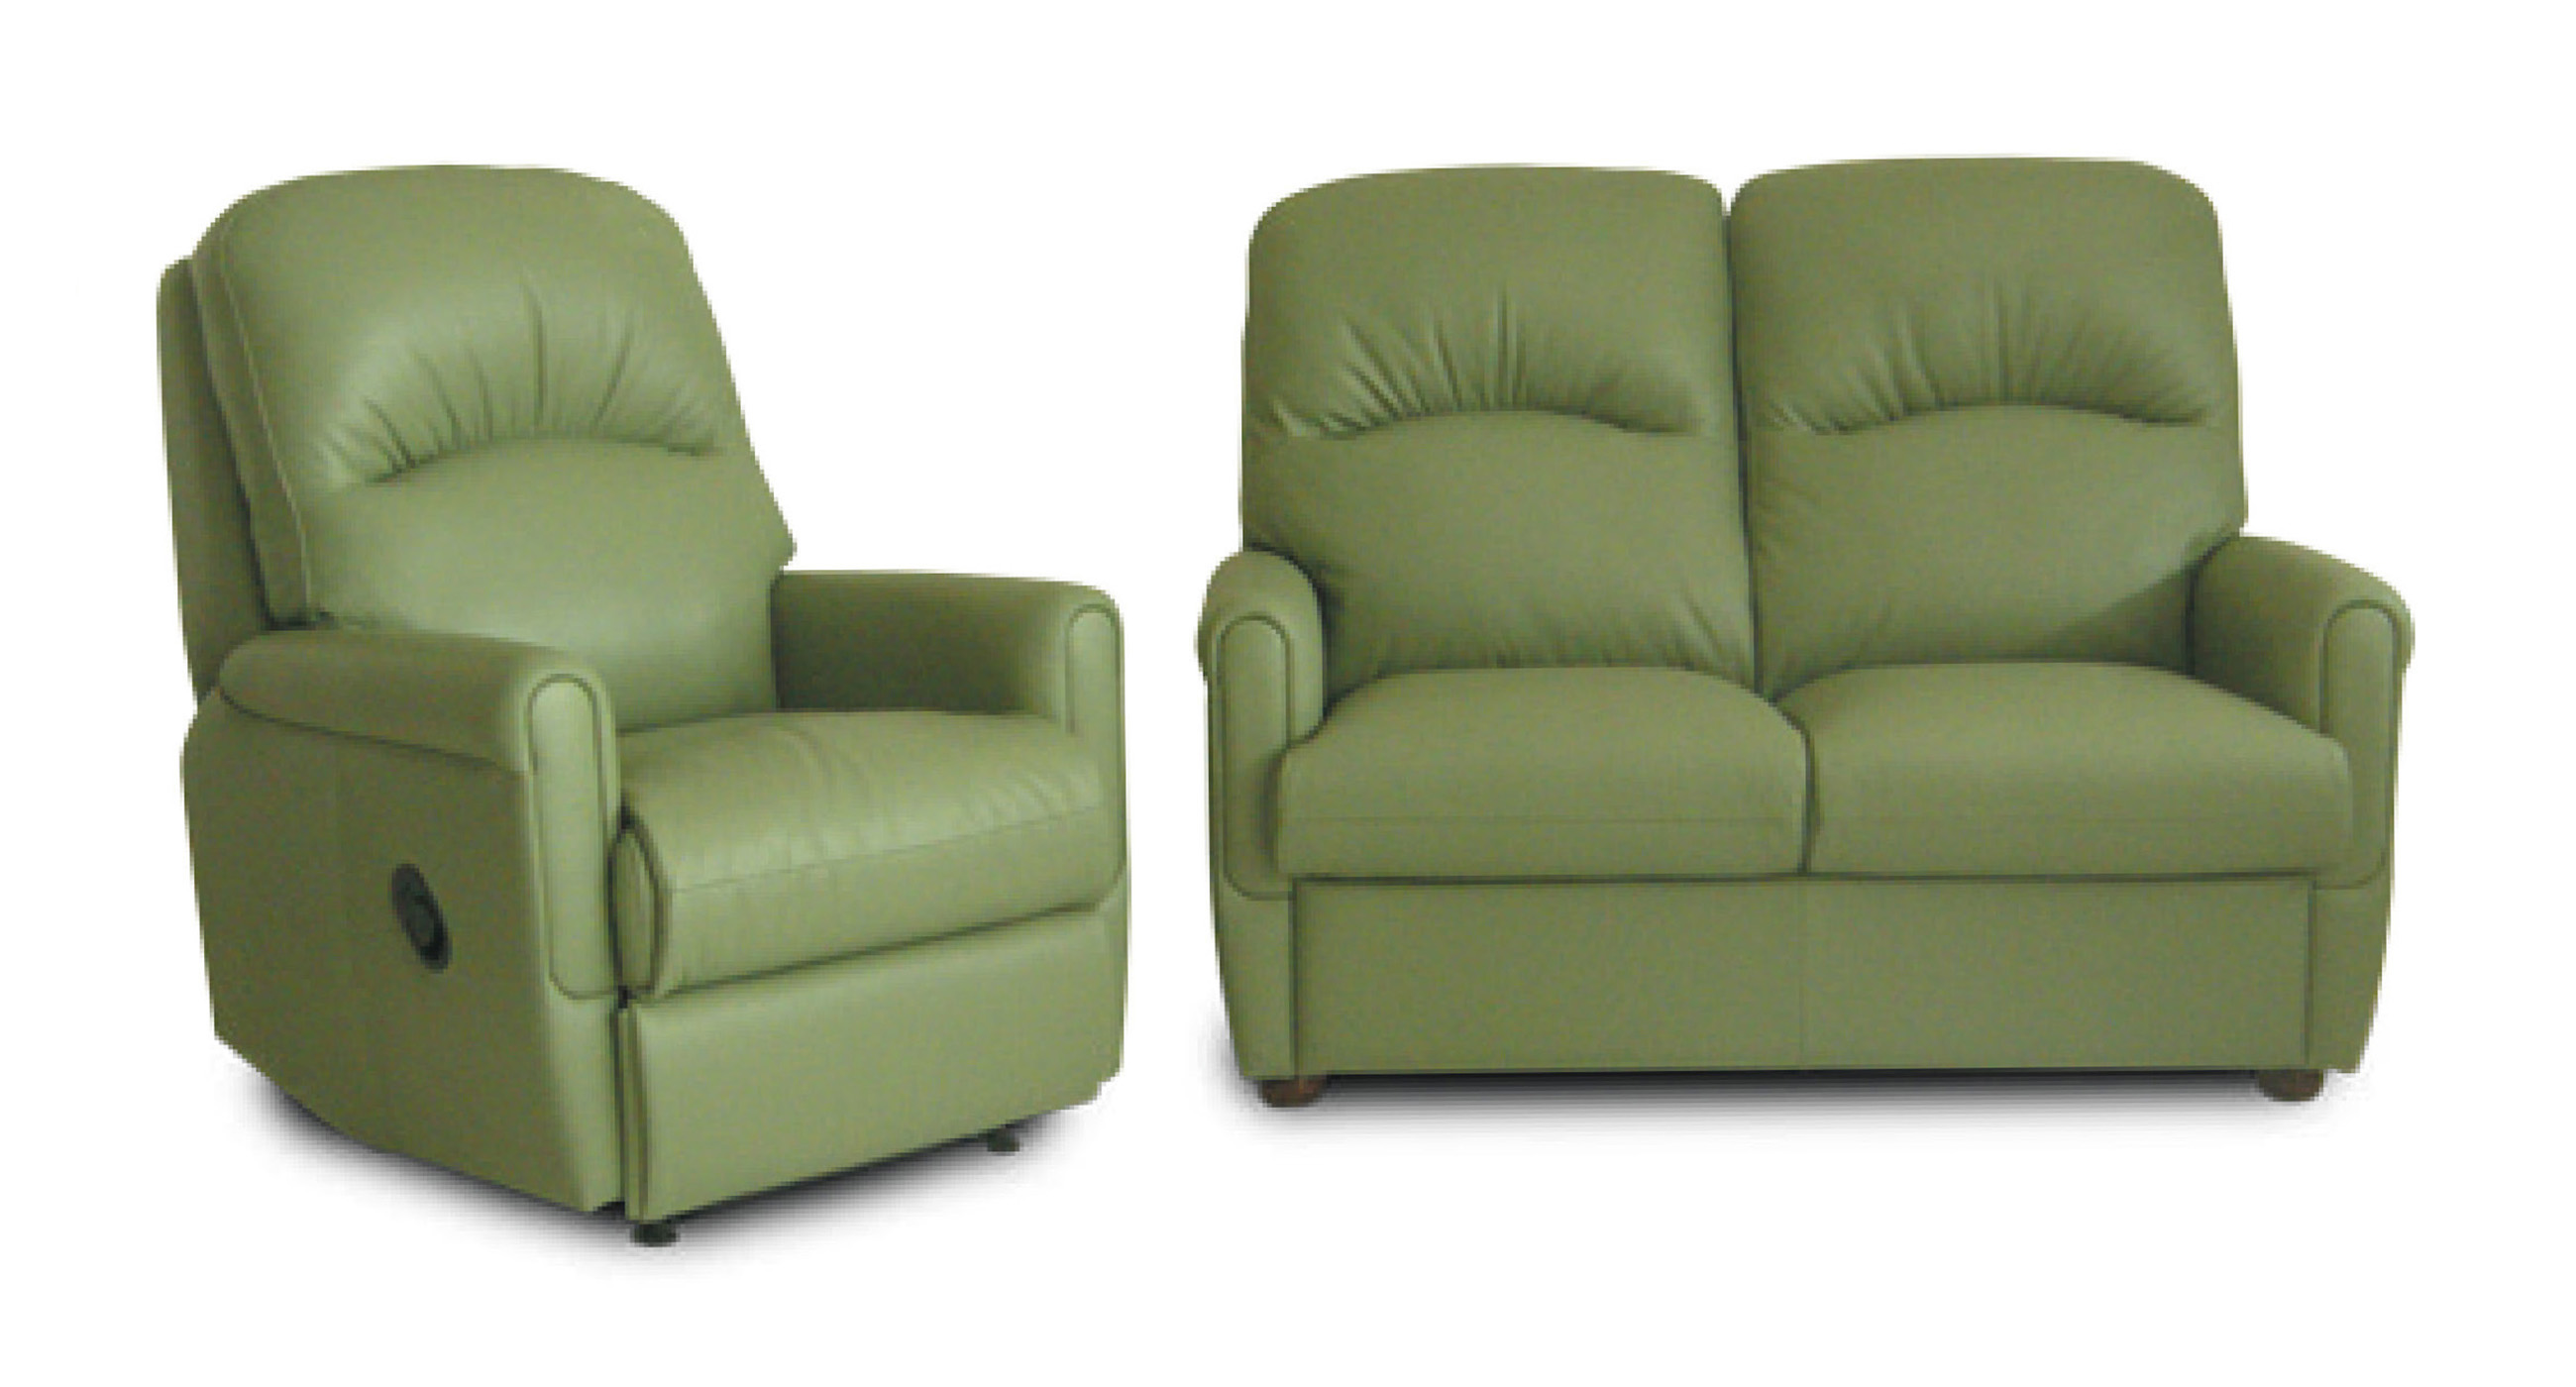 Hayman Reclining Sofa and Chairs